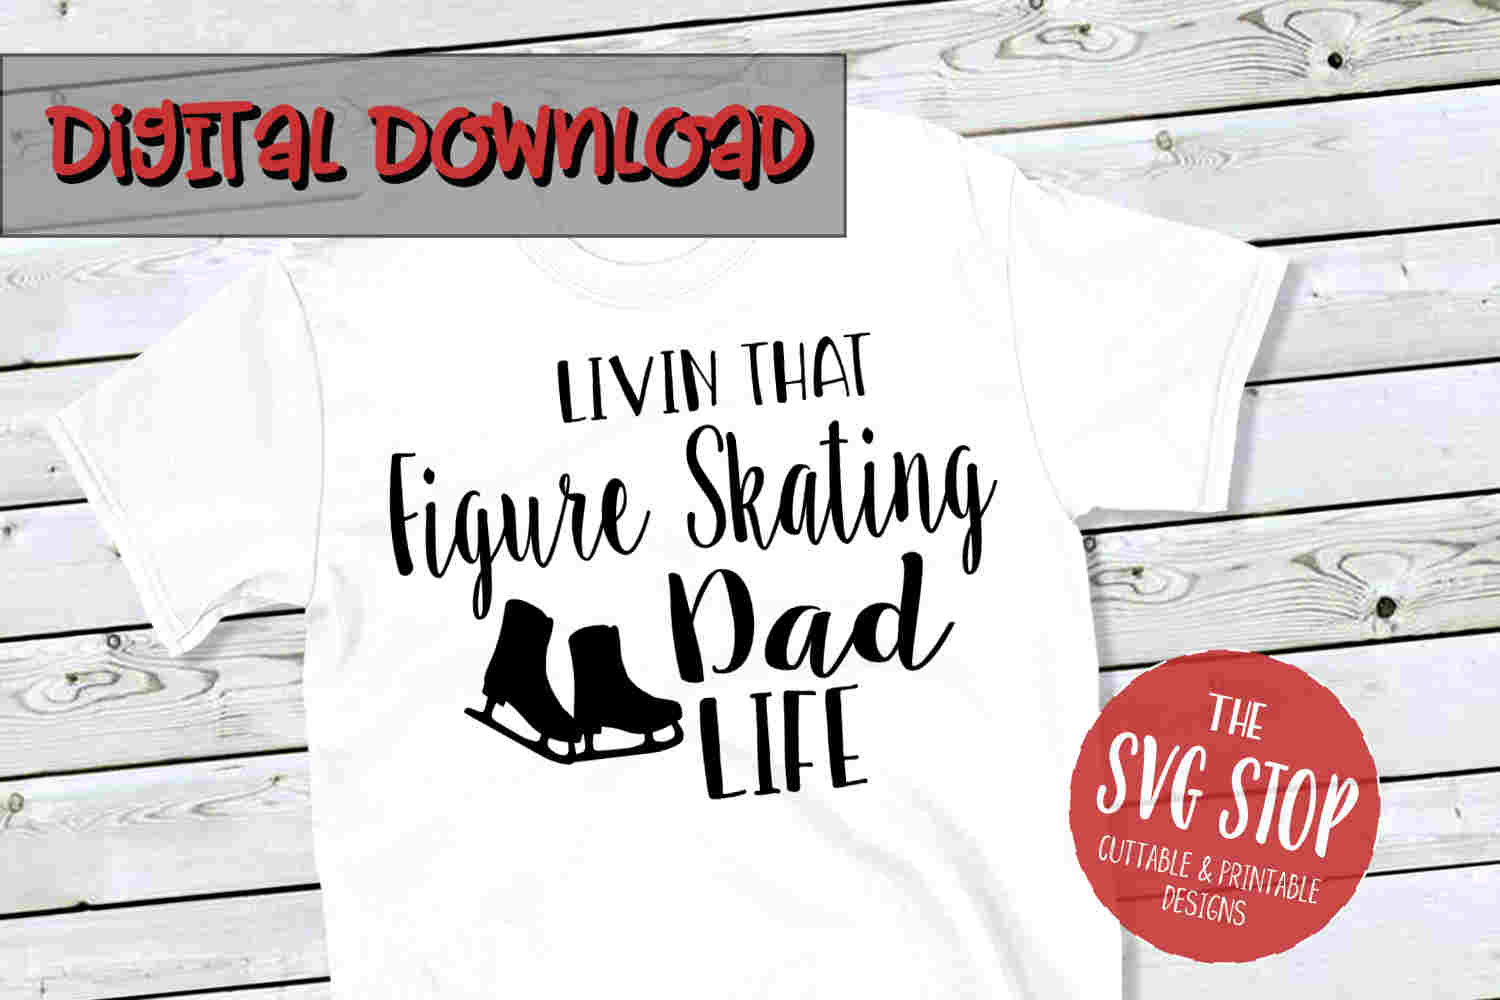 Figure Skating Dad Life -SVG, PNG, DXF example image 1